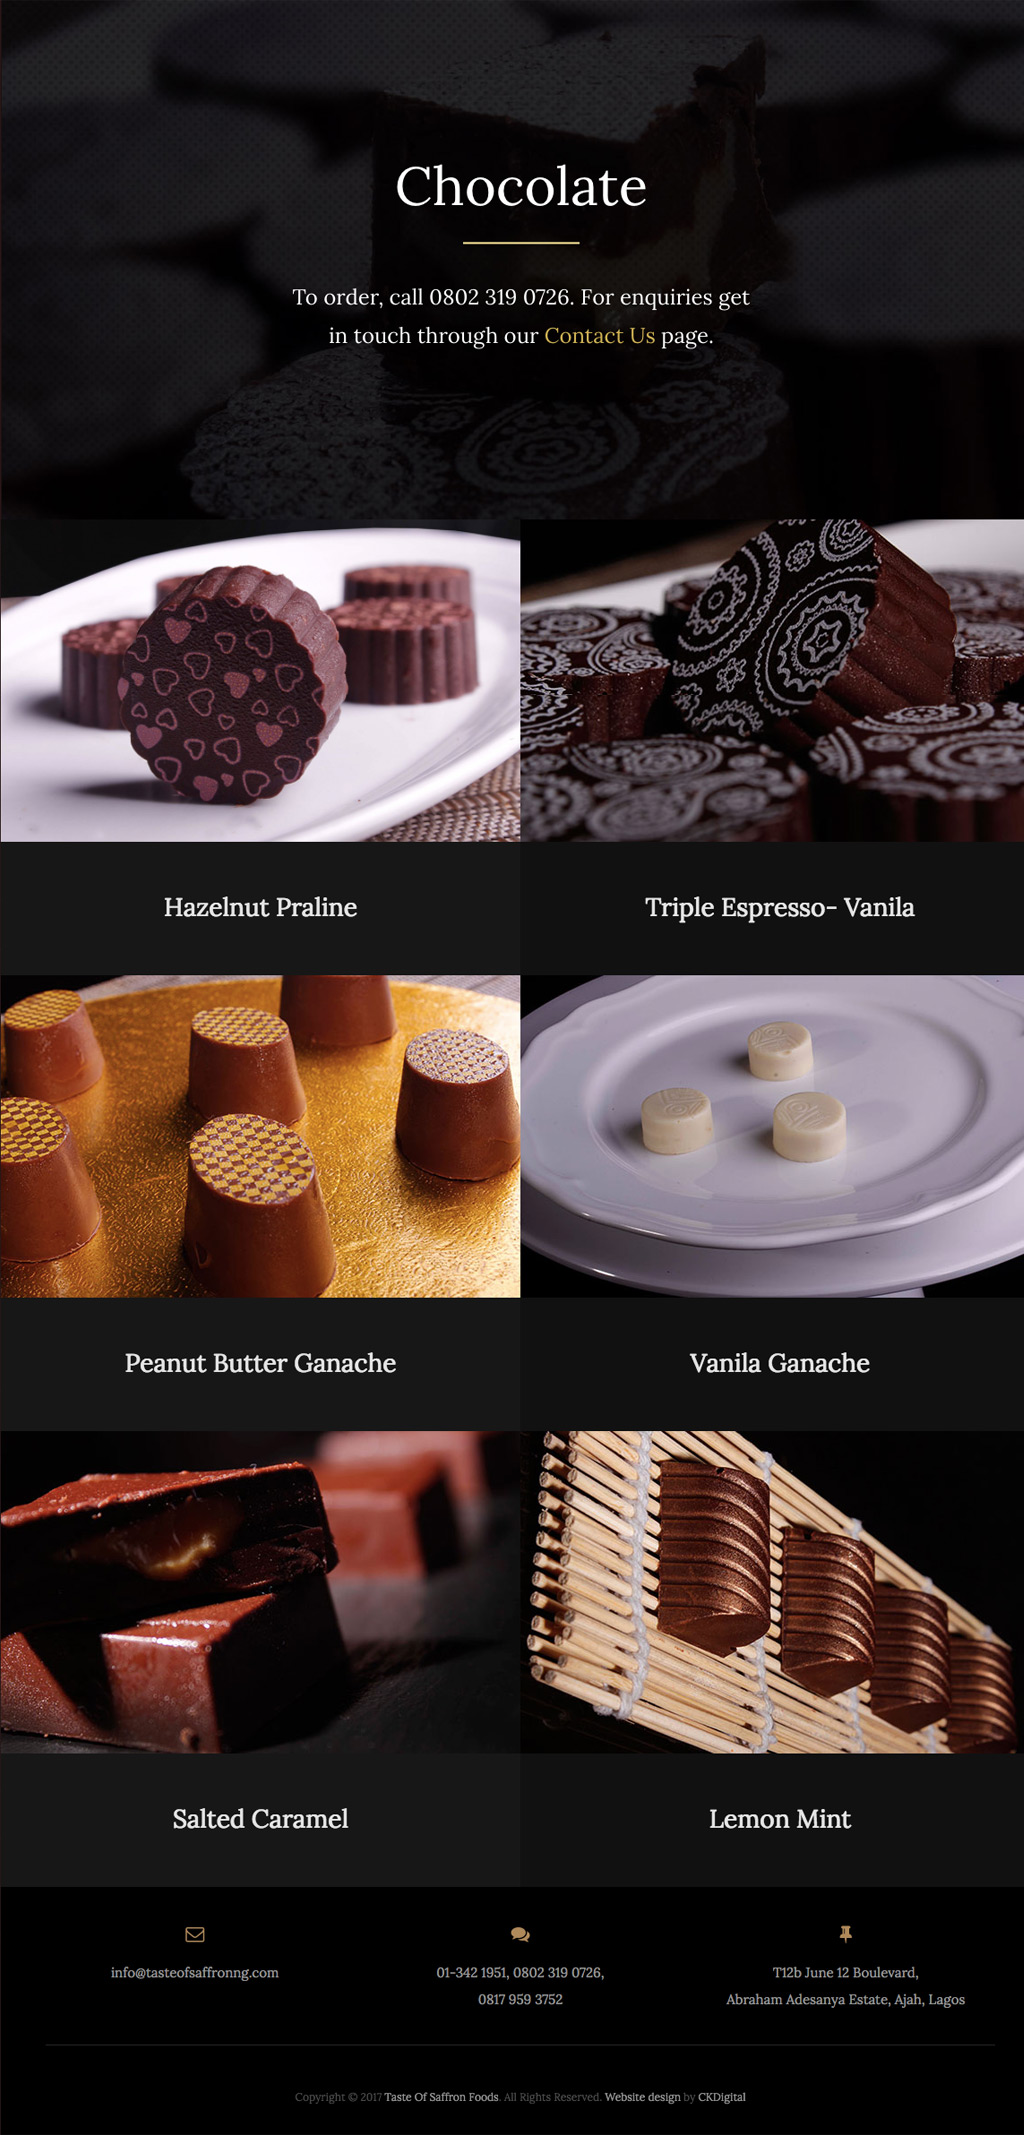 Taste of Saffron Website - Chocolate Page Design